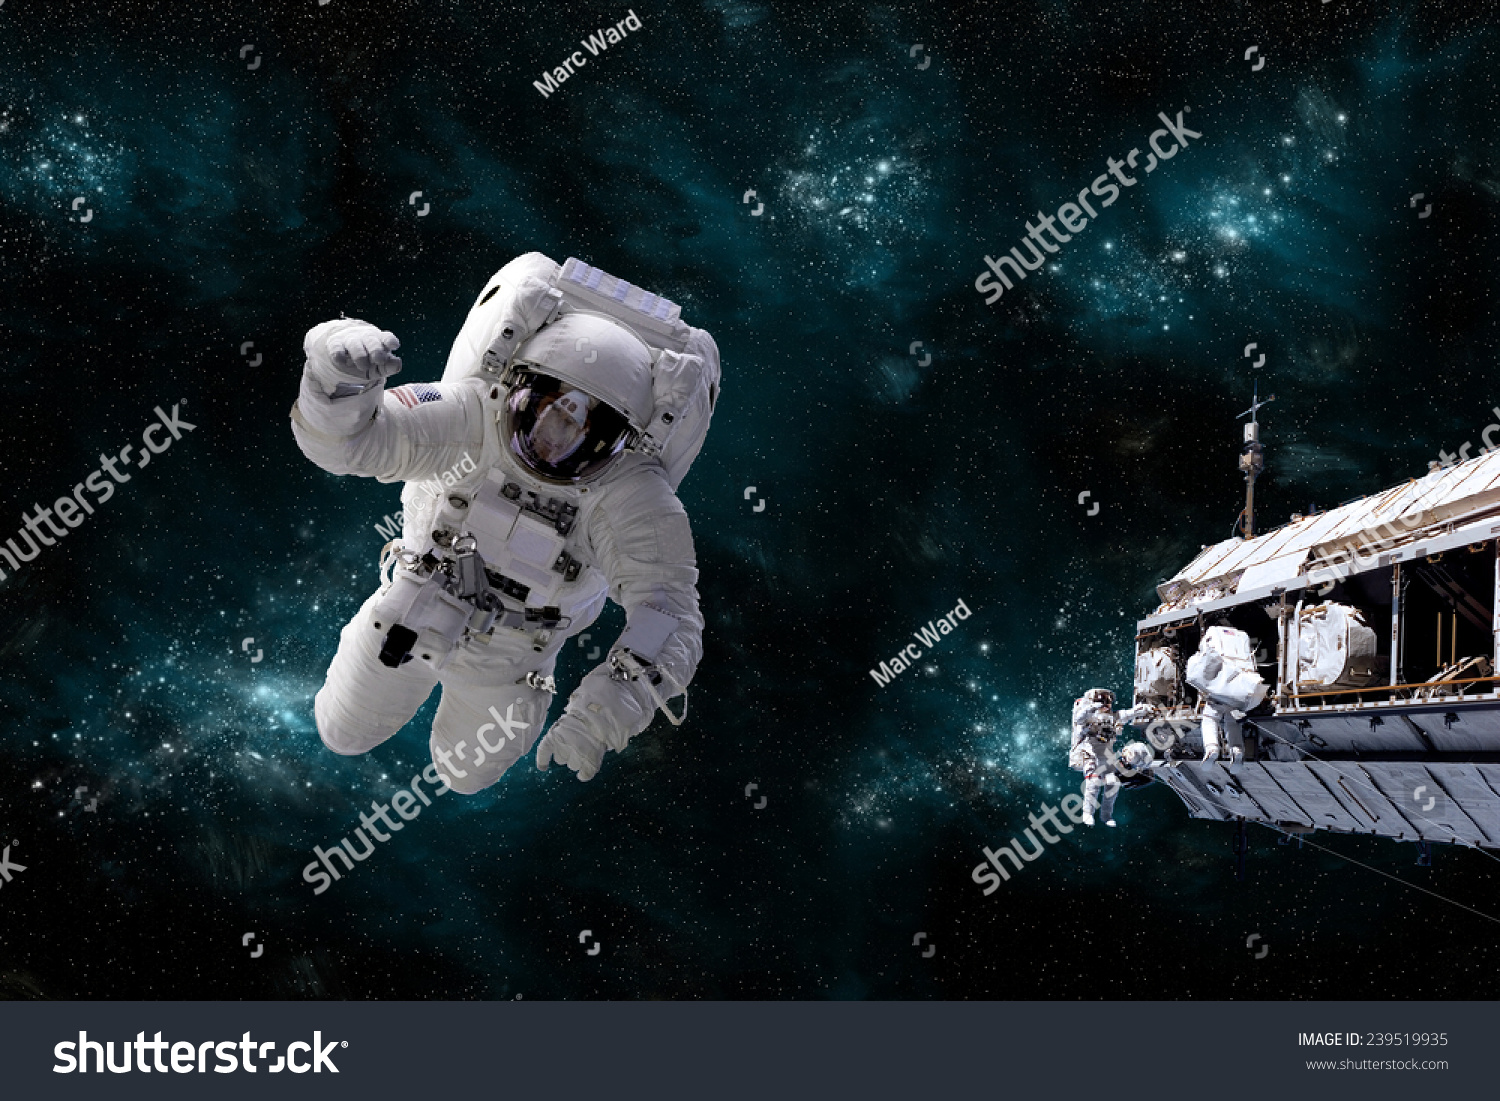 Depiction astronaut floating outer space while stock photo for Outer space elements